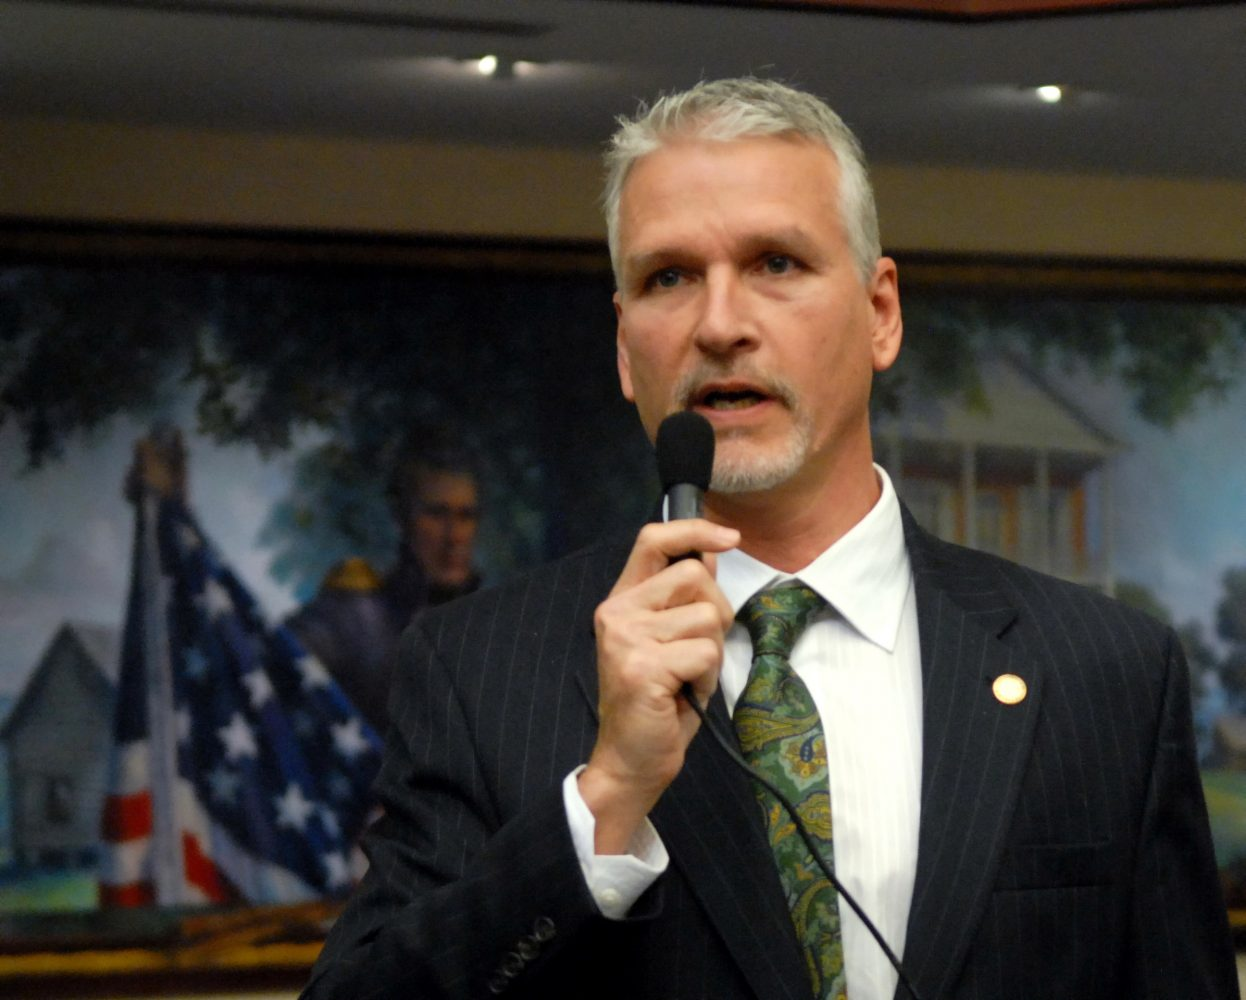 """State Rep. Warren """"Keith"""" Perry (R-District 21) who oversees Alachua, Dixie and Gilchrist counties, brought in $20,250 from 41 contributions, including a $500 donation from Rep. Dennis Baxley of Marion County."""